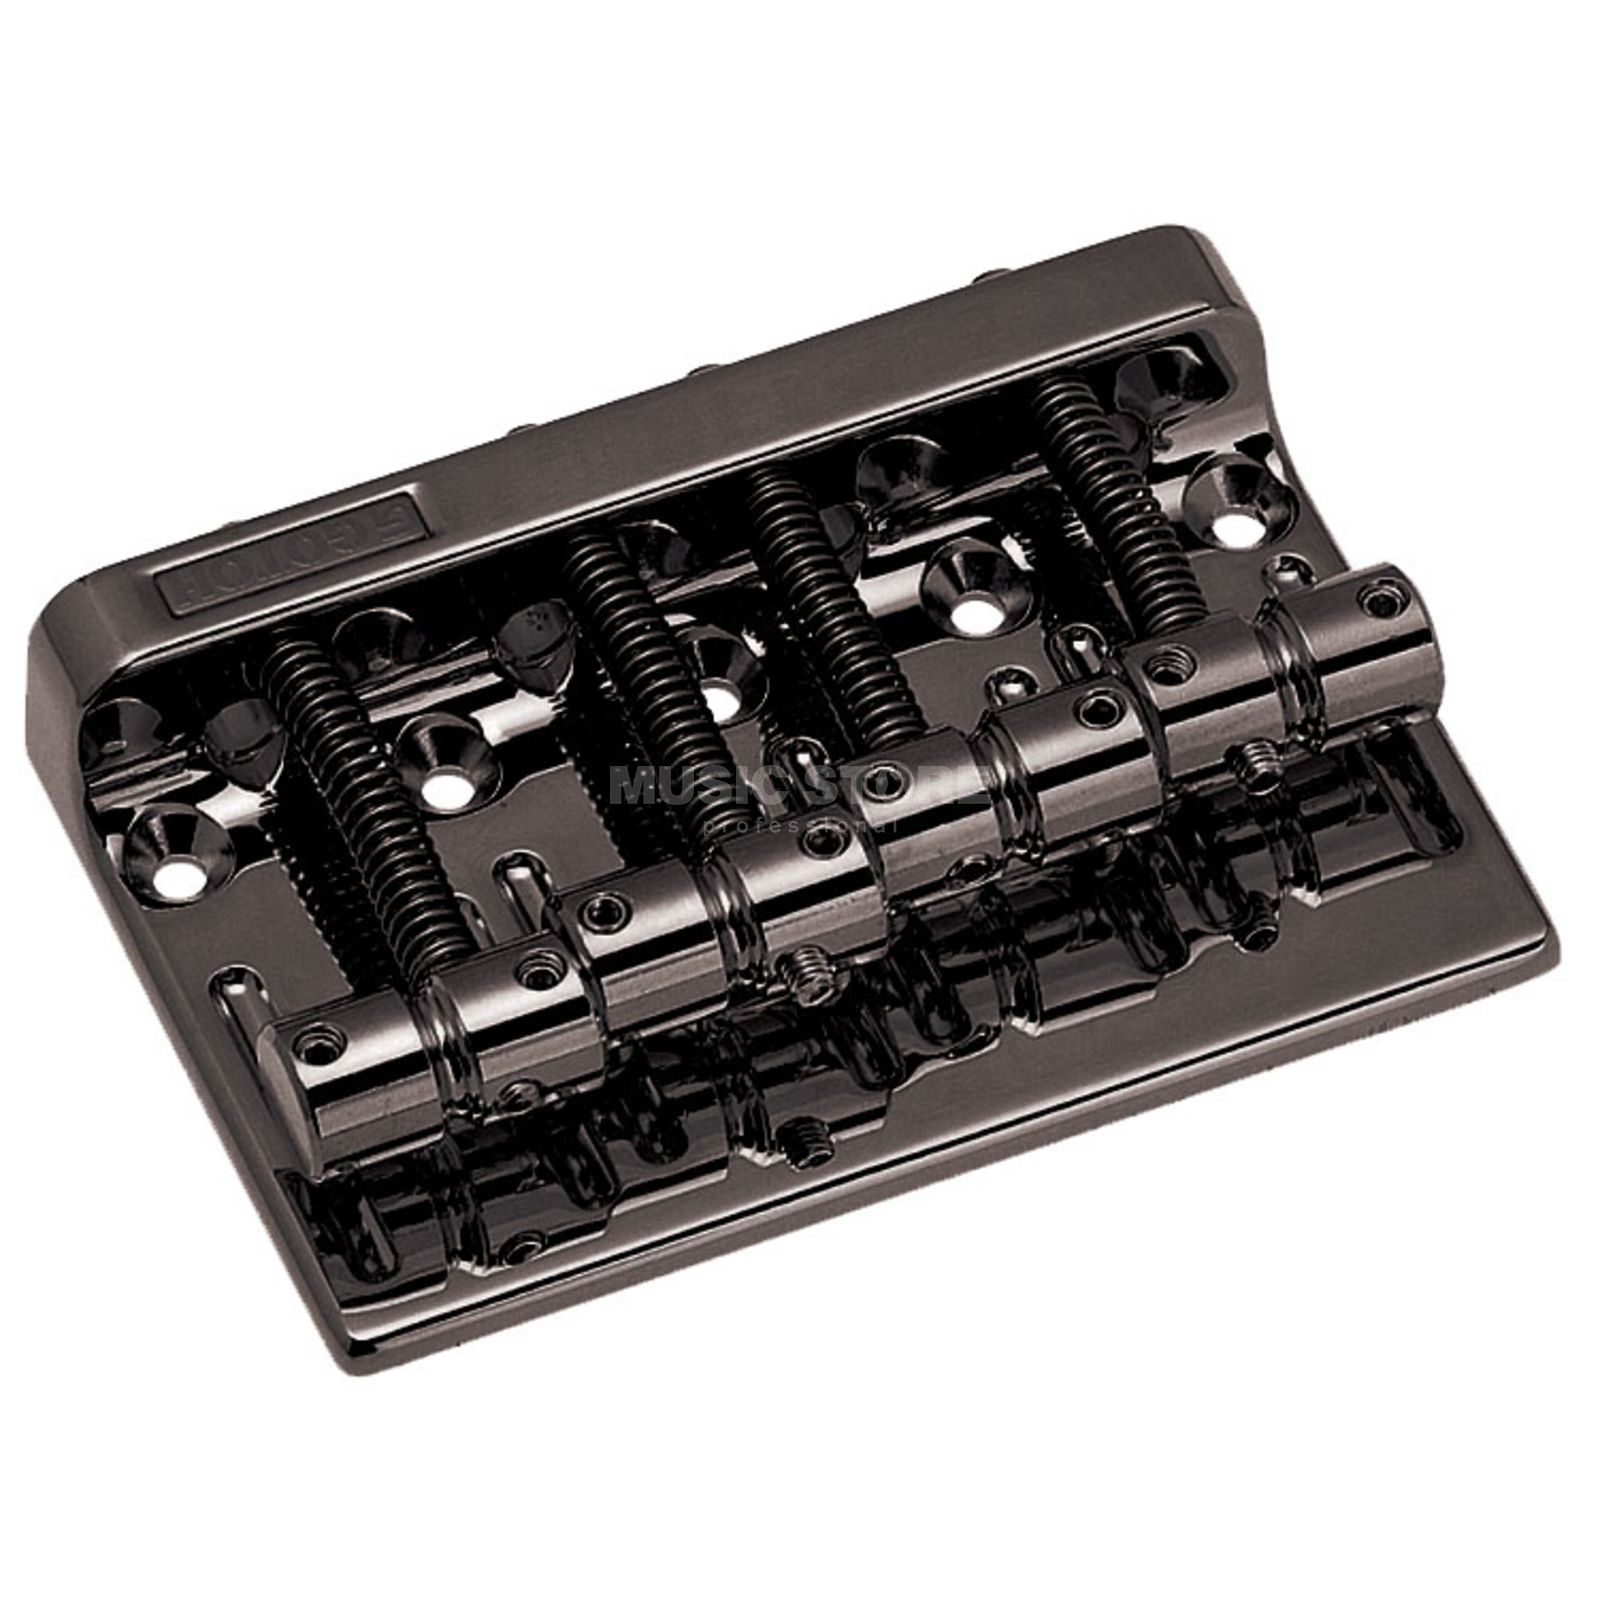 Gotoh Bass Bridge 201-B4 Cosmo Black  Product Image